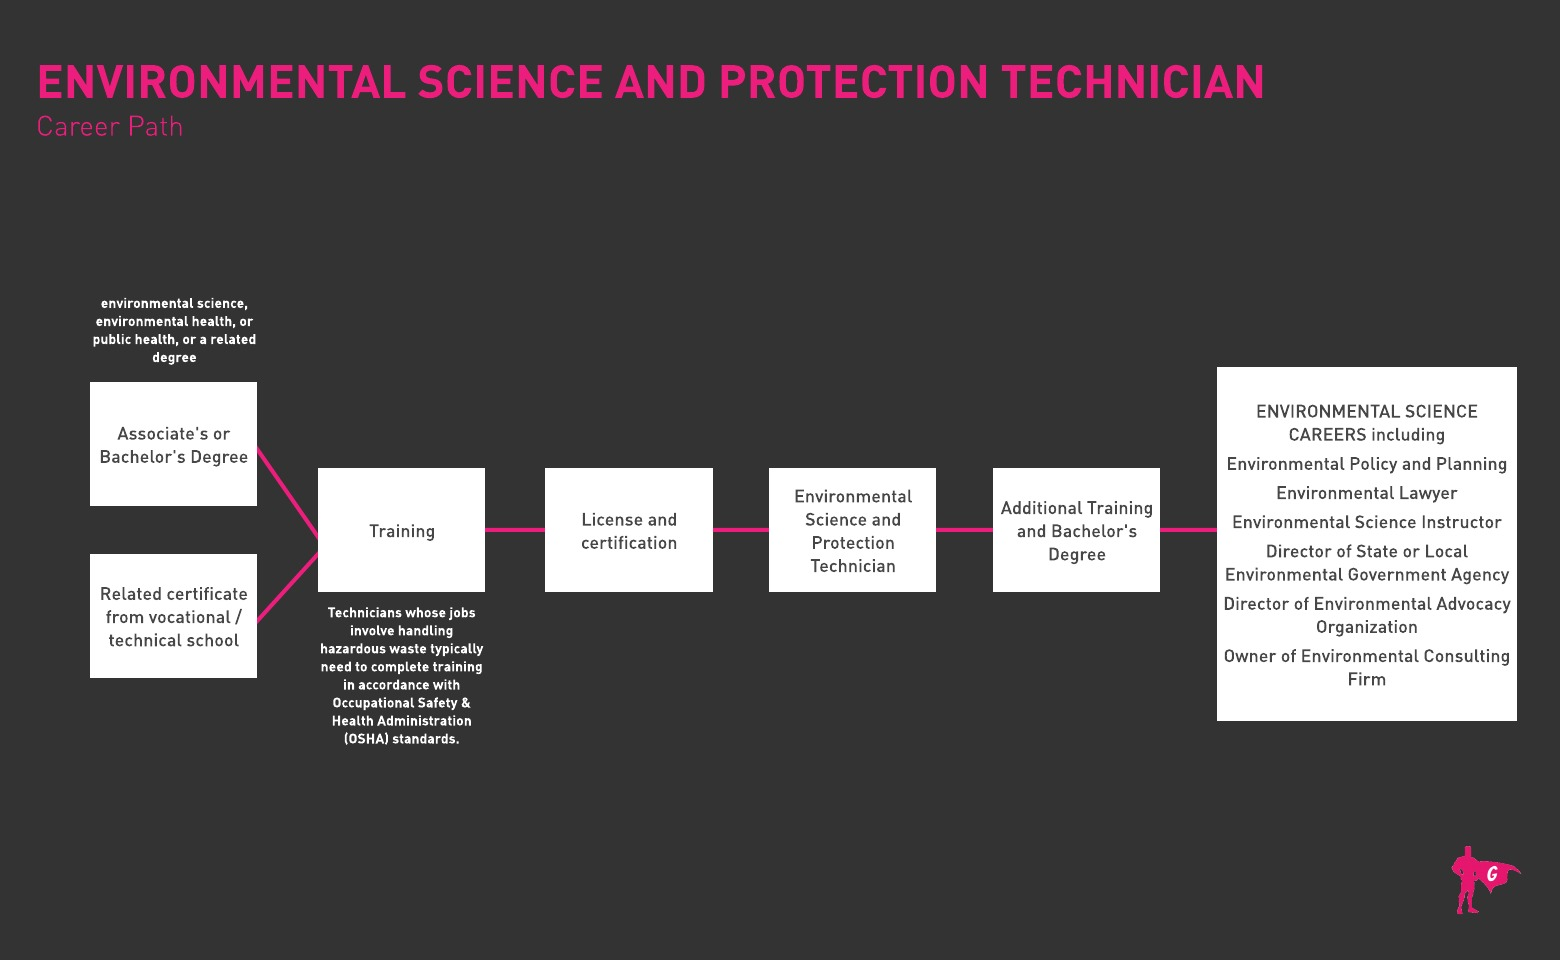 Gladeo Environmental Science and Protection Technician roadmap